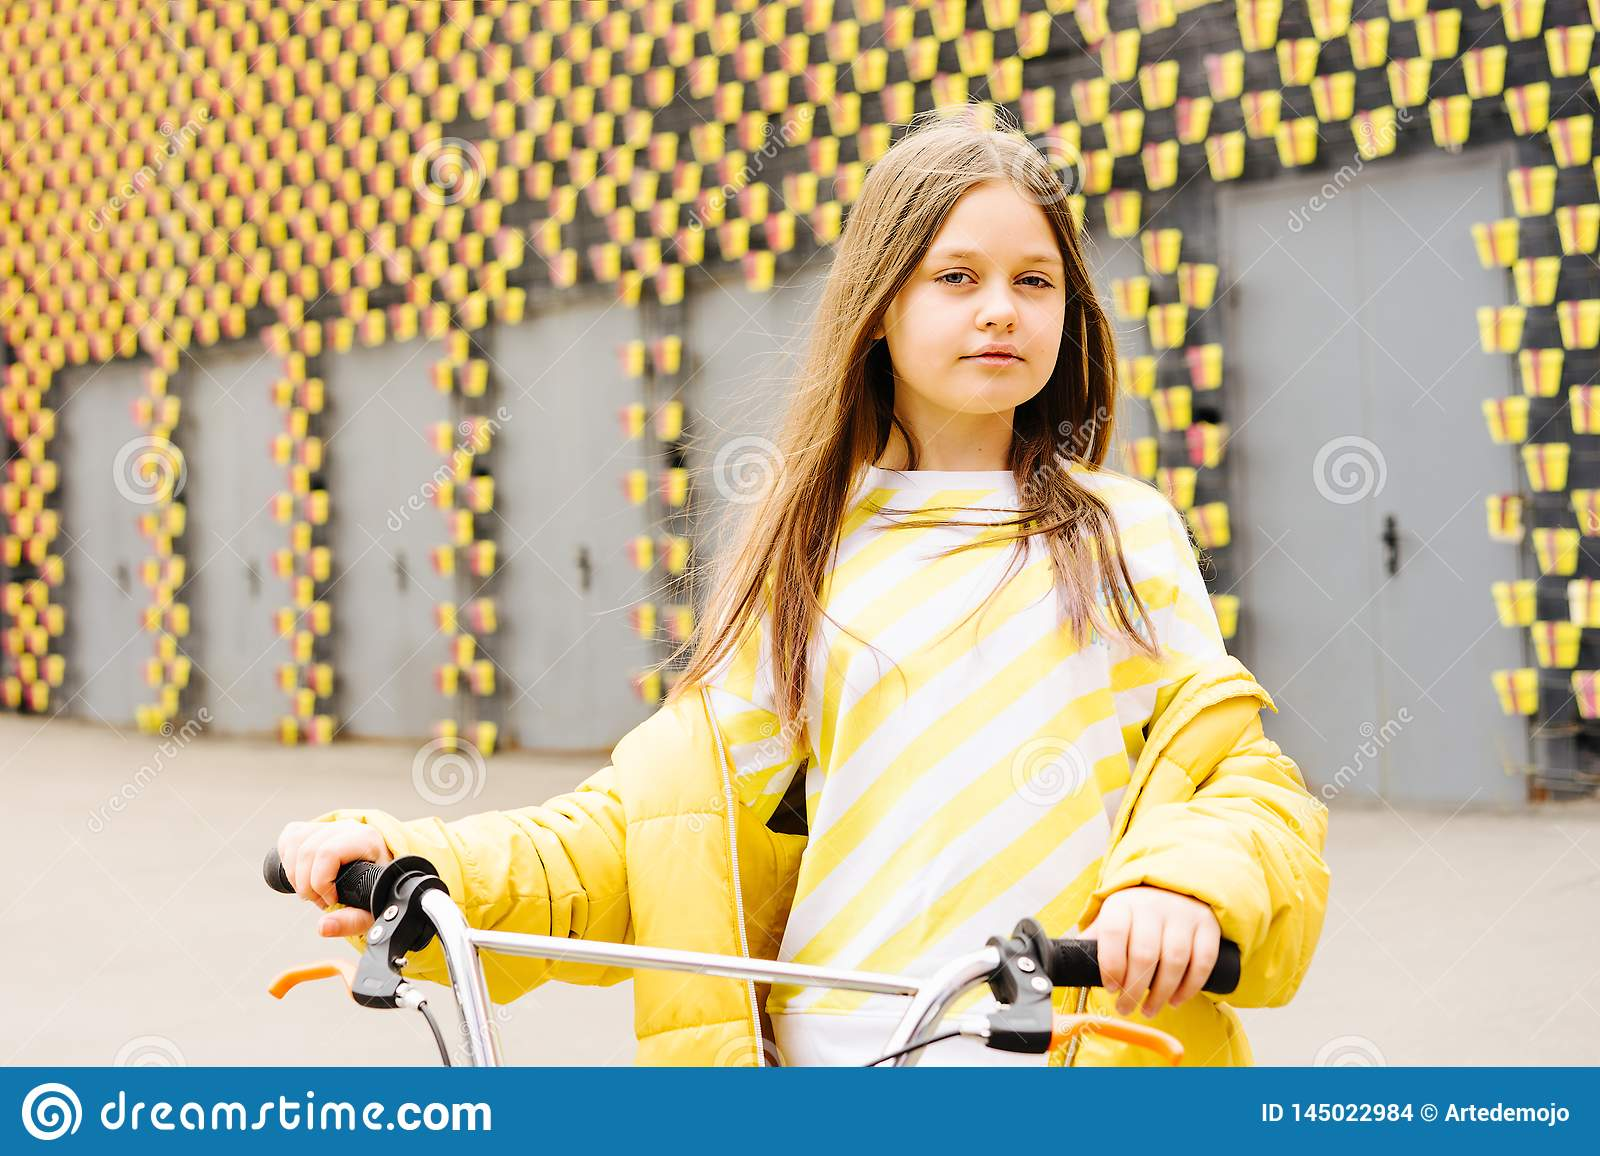 Long-haired blonde girl in a yellow sweater and yellow jacket